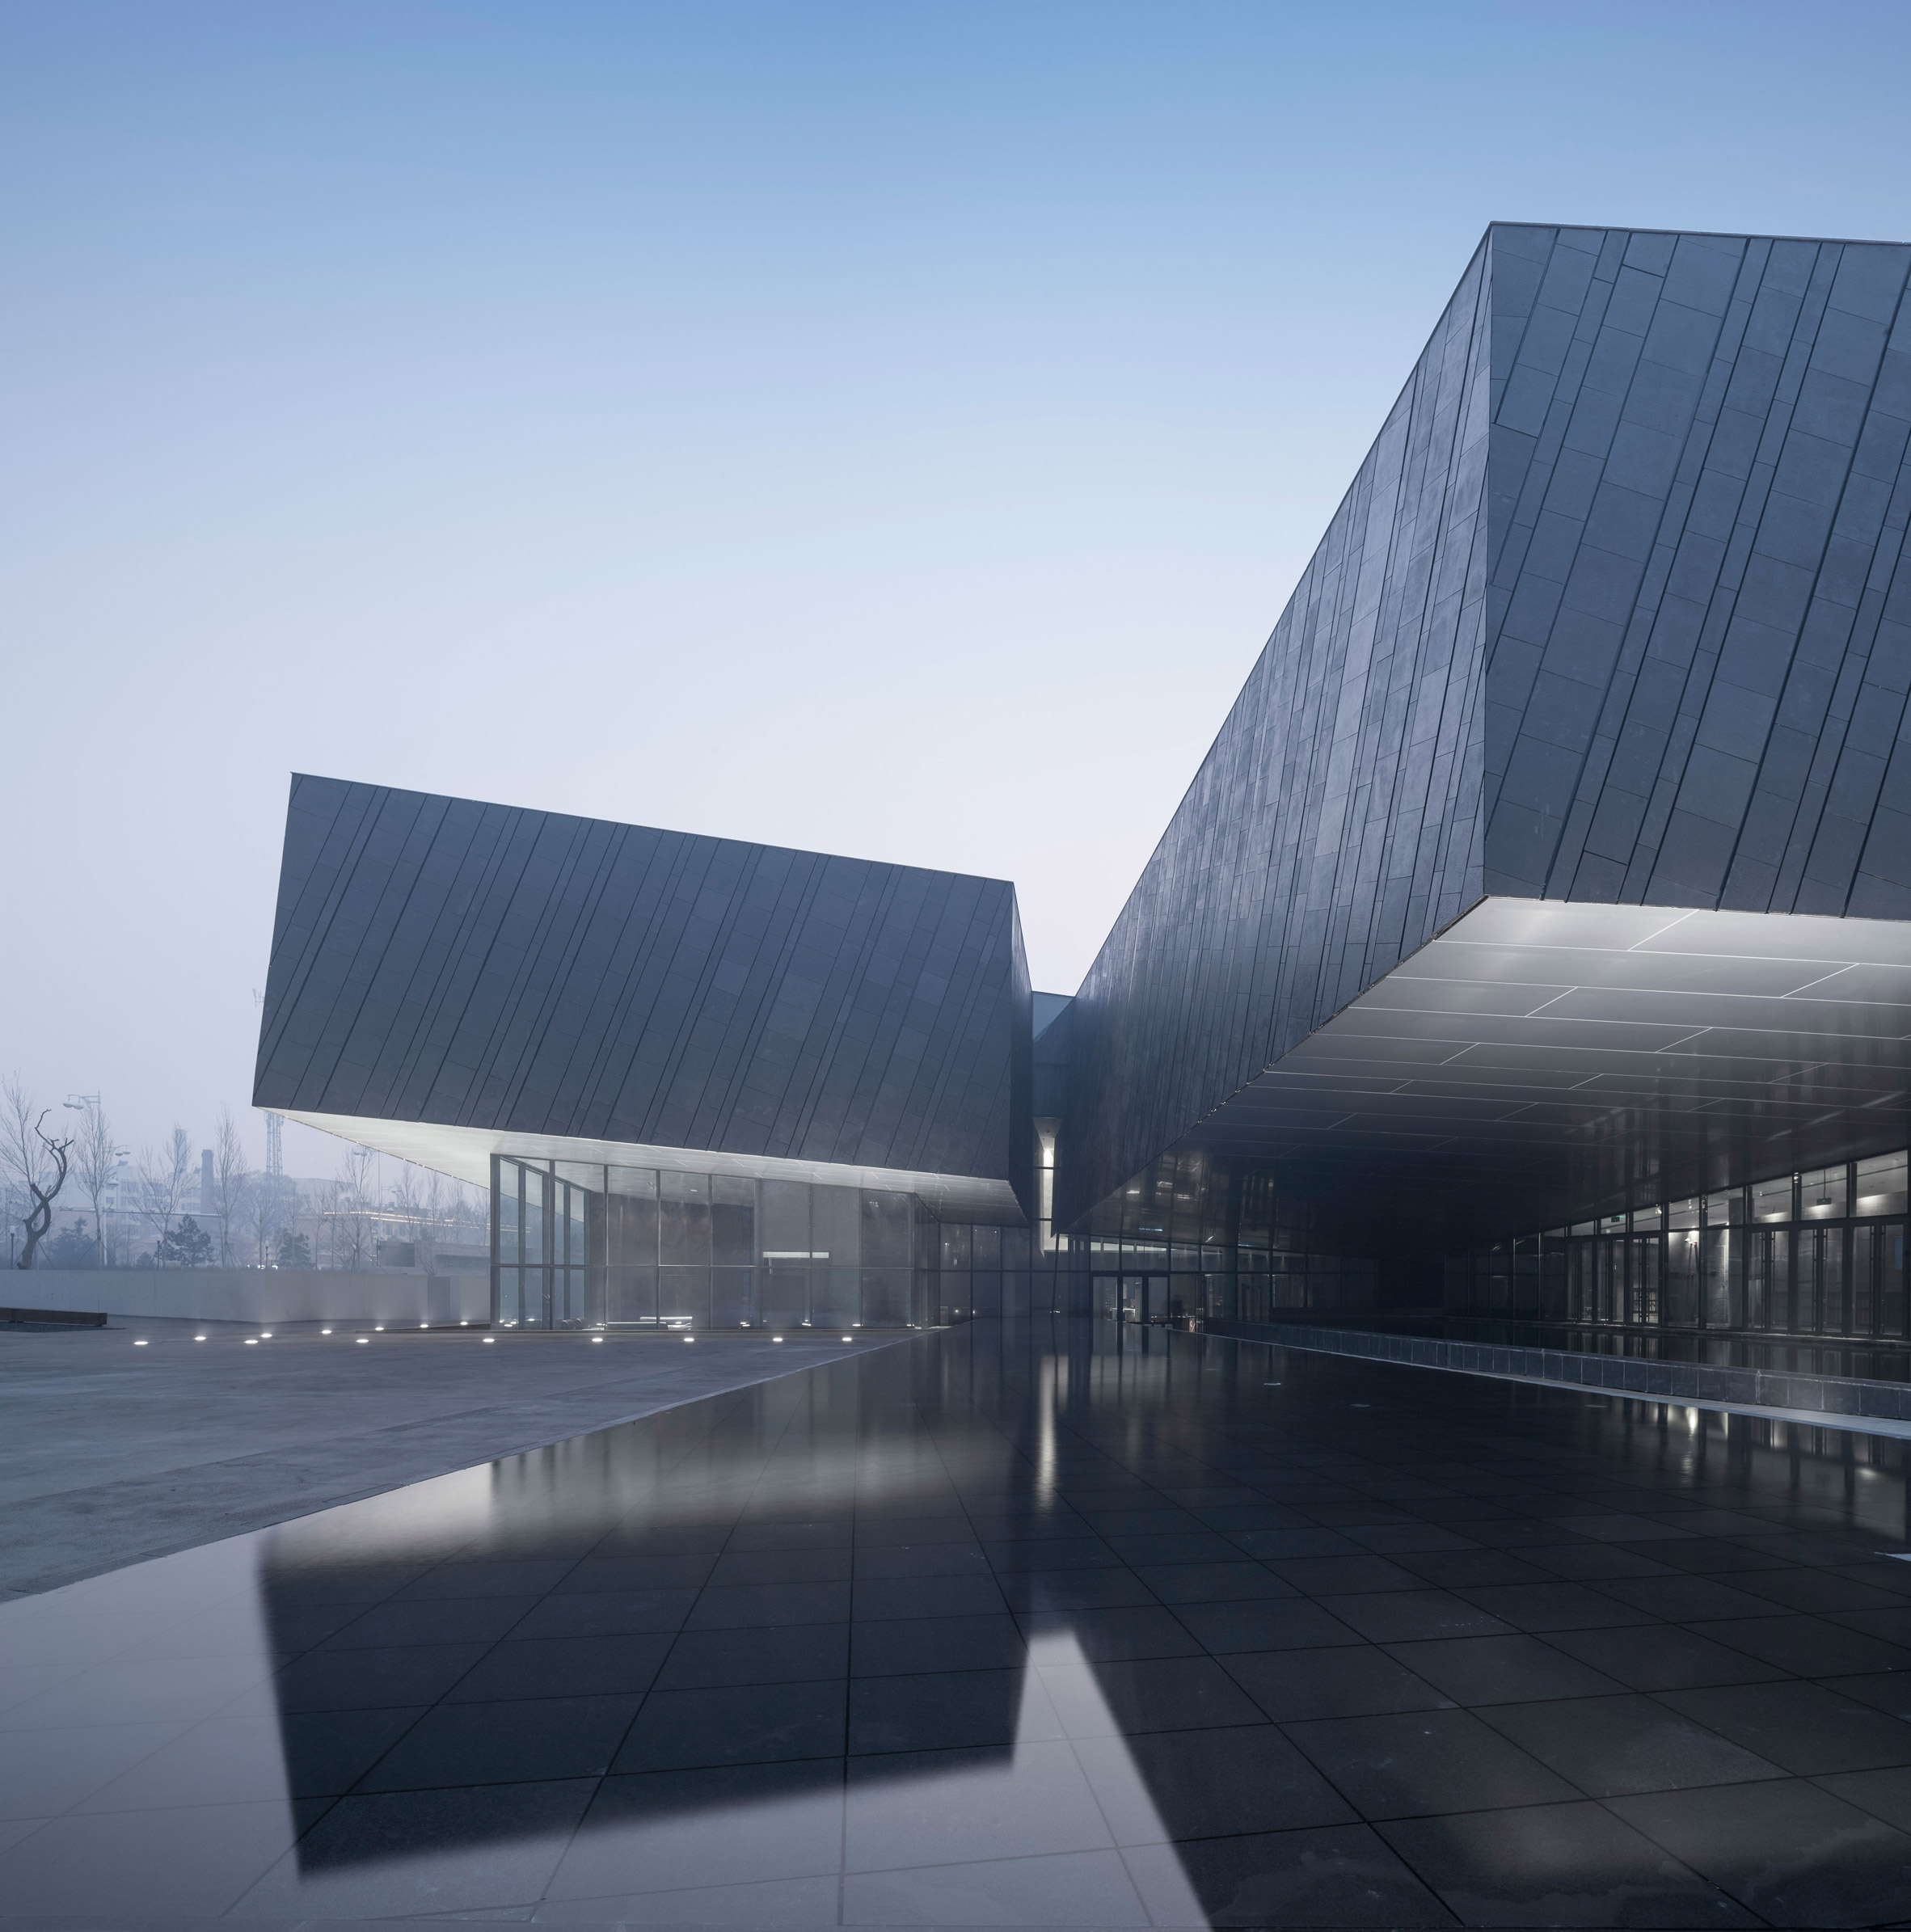 The Exhibition Hall of Crime Evidences in Harbin by He Jingtang